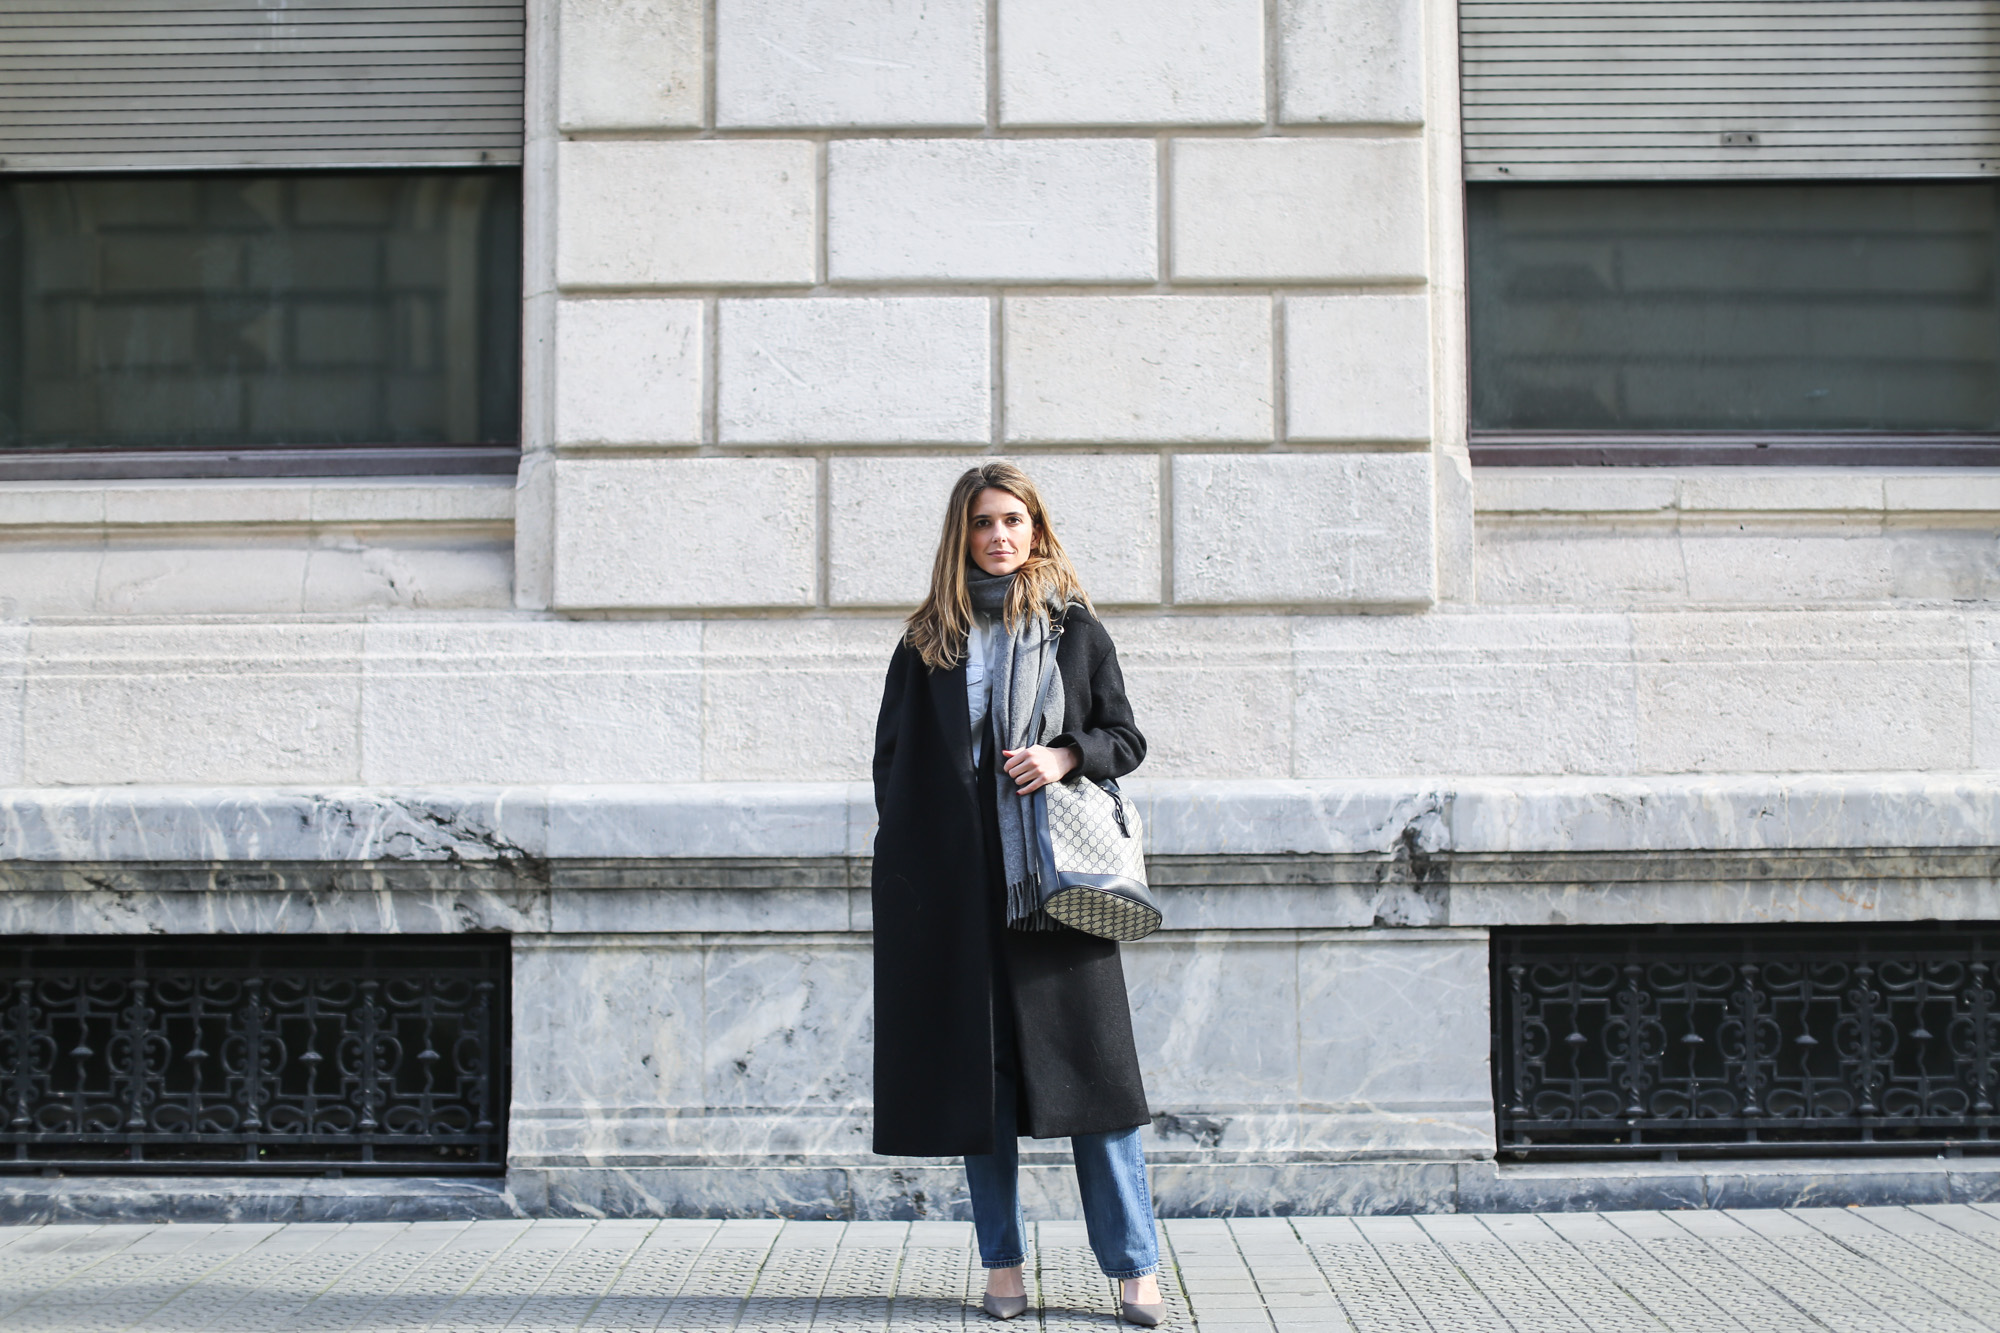 clochet_streetstyle_gucci_bucket_bag_levis_501_vintage_cos_long_coat-4